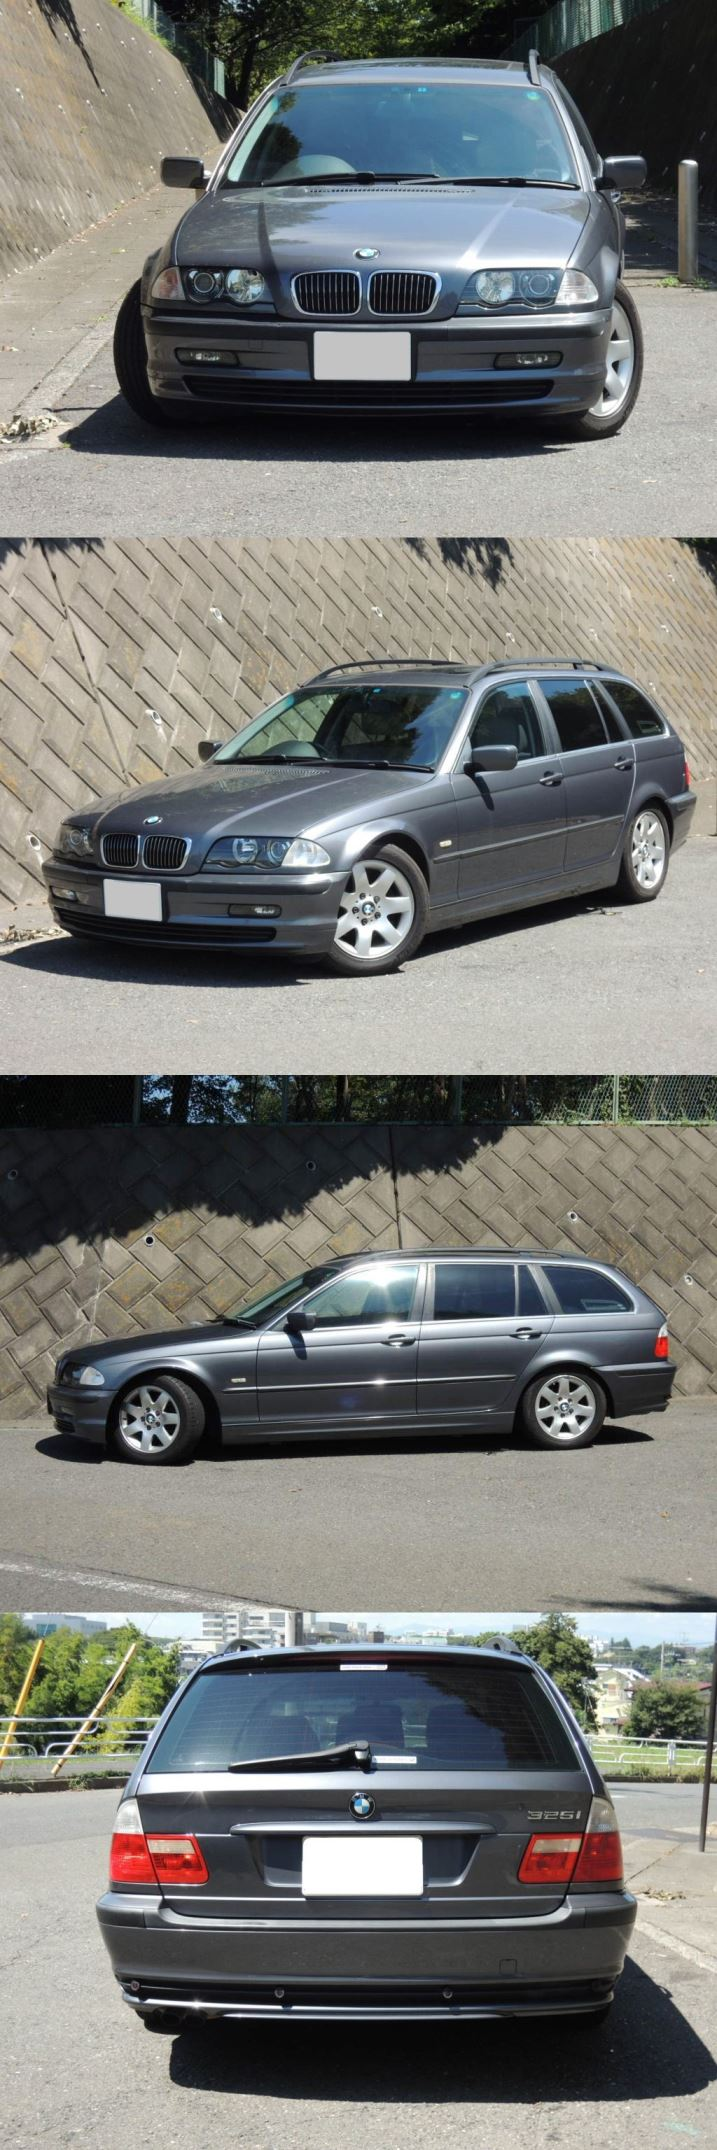 BMWgray1.jpg